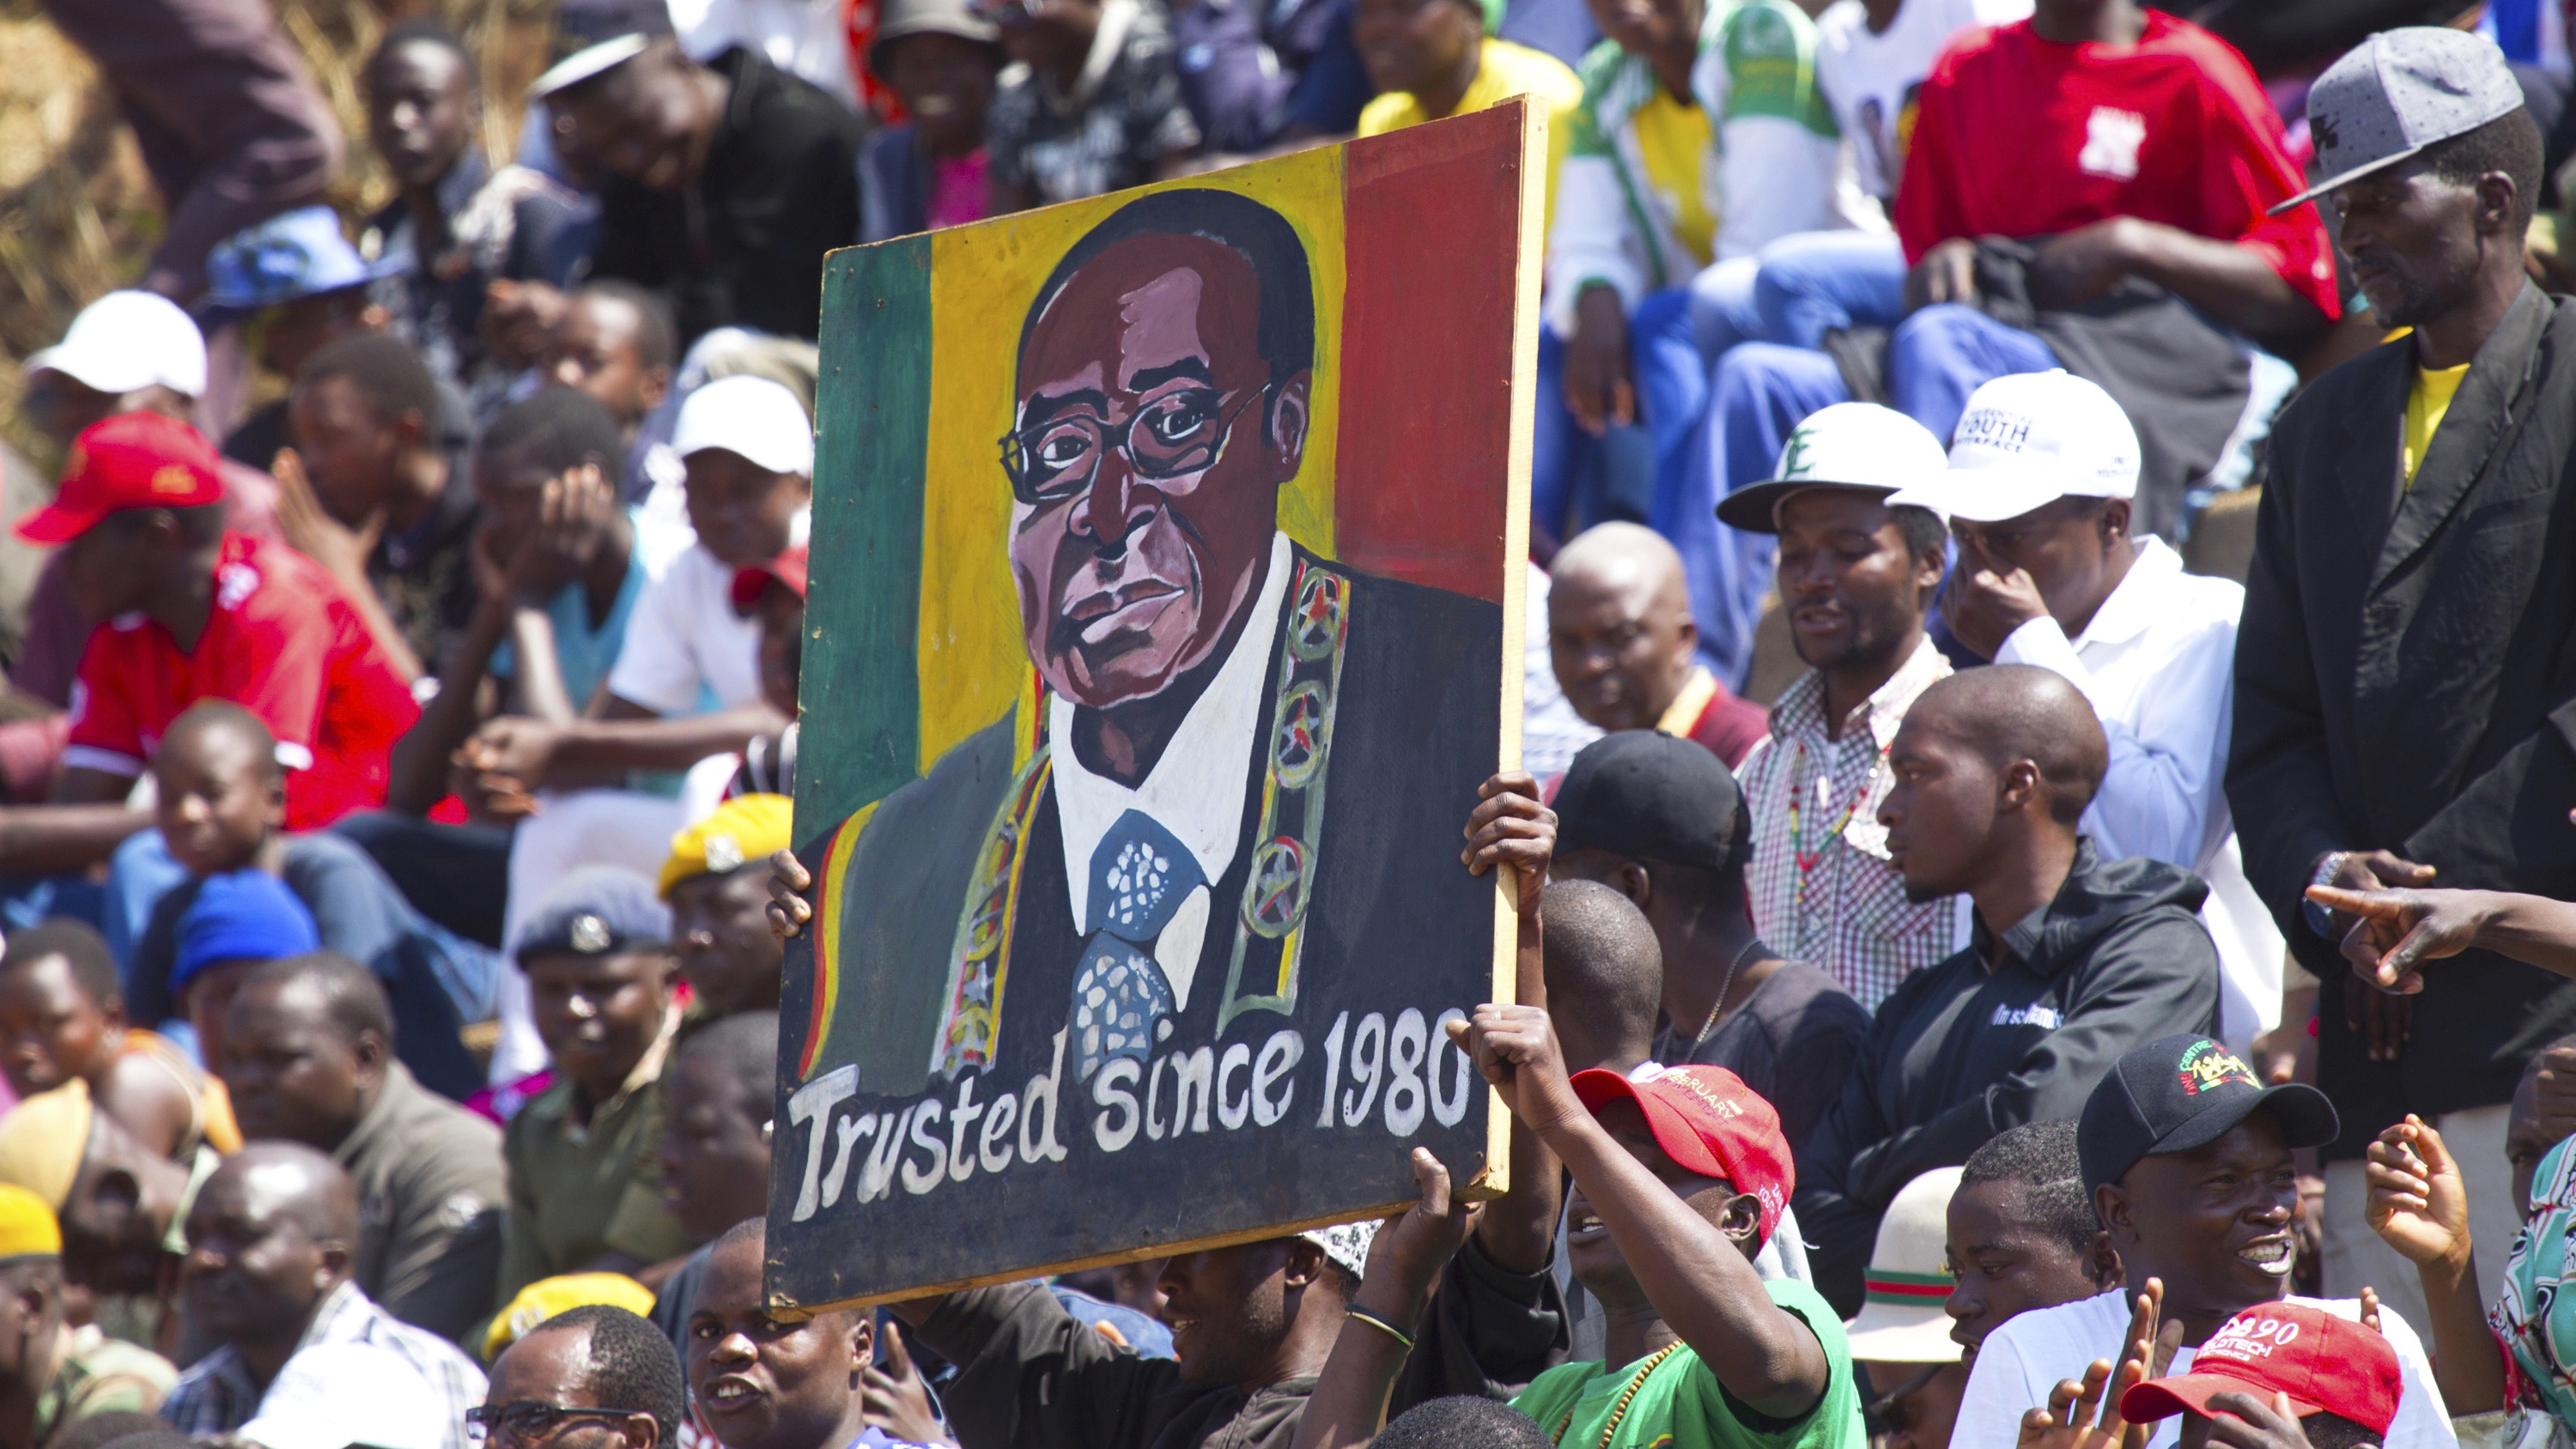 Supporters of Zimbabwean President Robert Mugabe  carry his portrait at a state funeral in Harare, Sunday. August, 20, 2017. Mugabe  and his wife Grace did not attend the  funeral  following  their return  from Johannesburg, where the First lady  faced calls for  prosecution for allegedly assaulting a woman.The Mugabe couple returned early Sunday, from South Africa where the President was  attending a summitt  for Southern African countries(AP Photo/Tsvangirayi Mukwazhi)